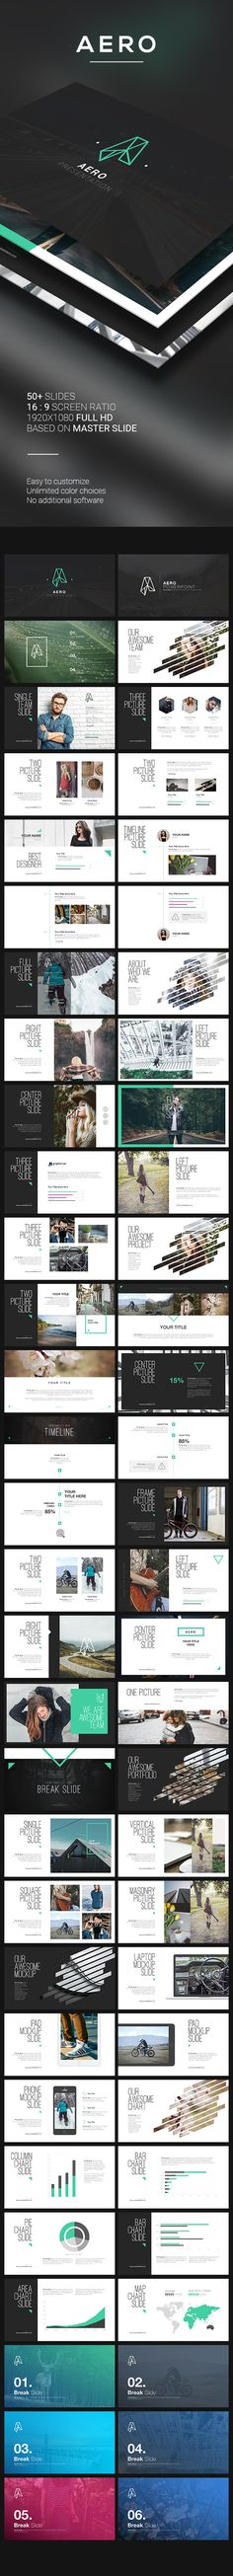 AERO Keynote Template. Download here: http://graphicriver.net/item/aero-keynote-template/15930485?ref=ksioks